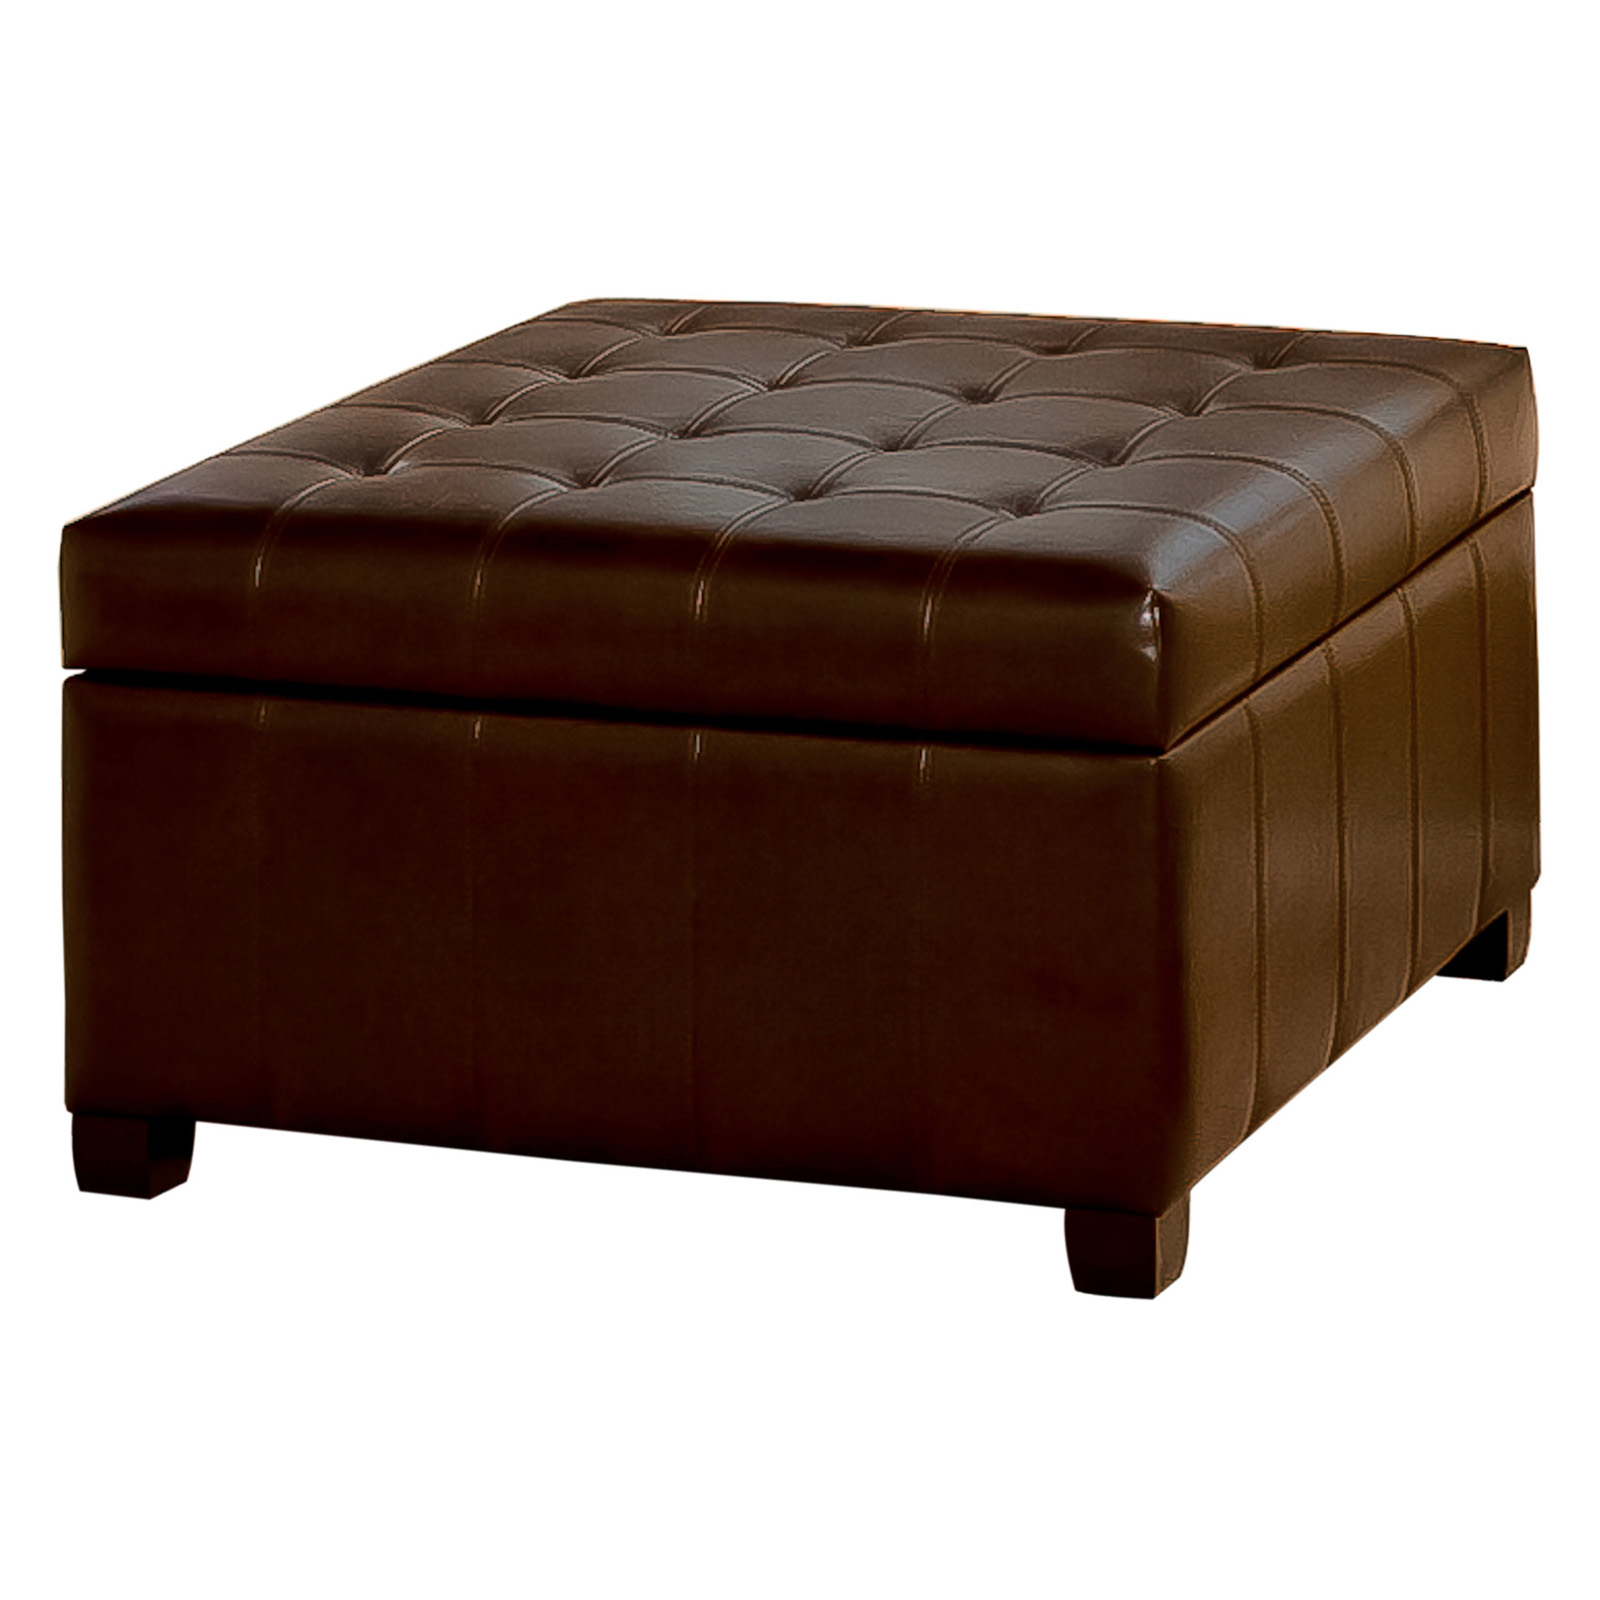 Fiona tufted leather storage ottoman ottomans at hayneedle for What is an ottoman for